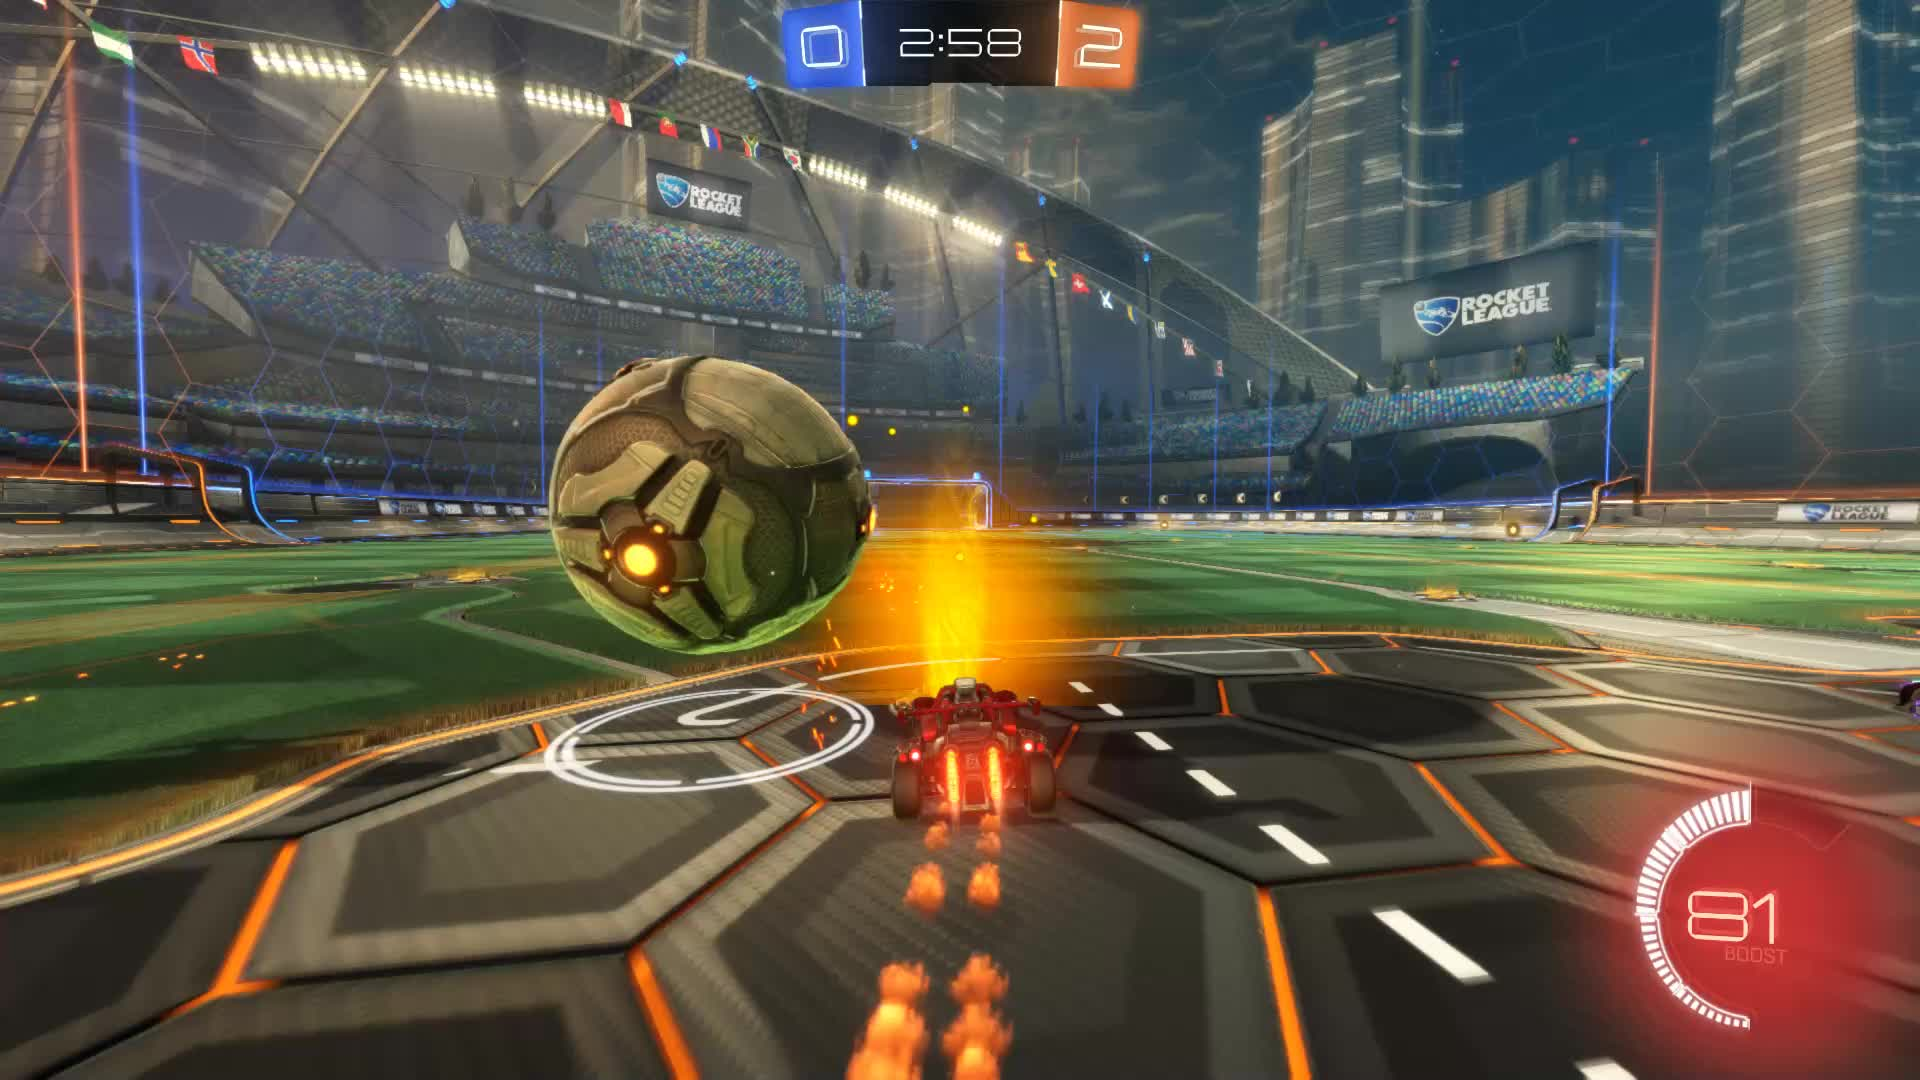 Gif Your Game, GifYourGame, Goal, JAG, Rocket League, RocketLeague, Goal 3: JAG GIFs